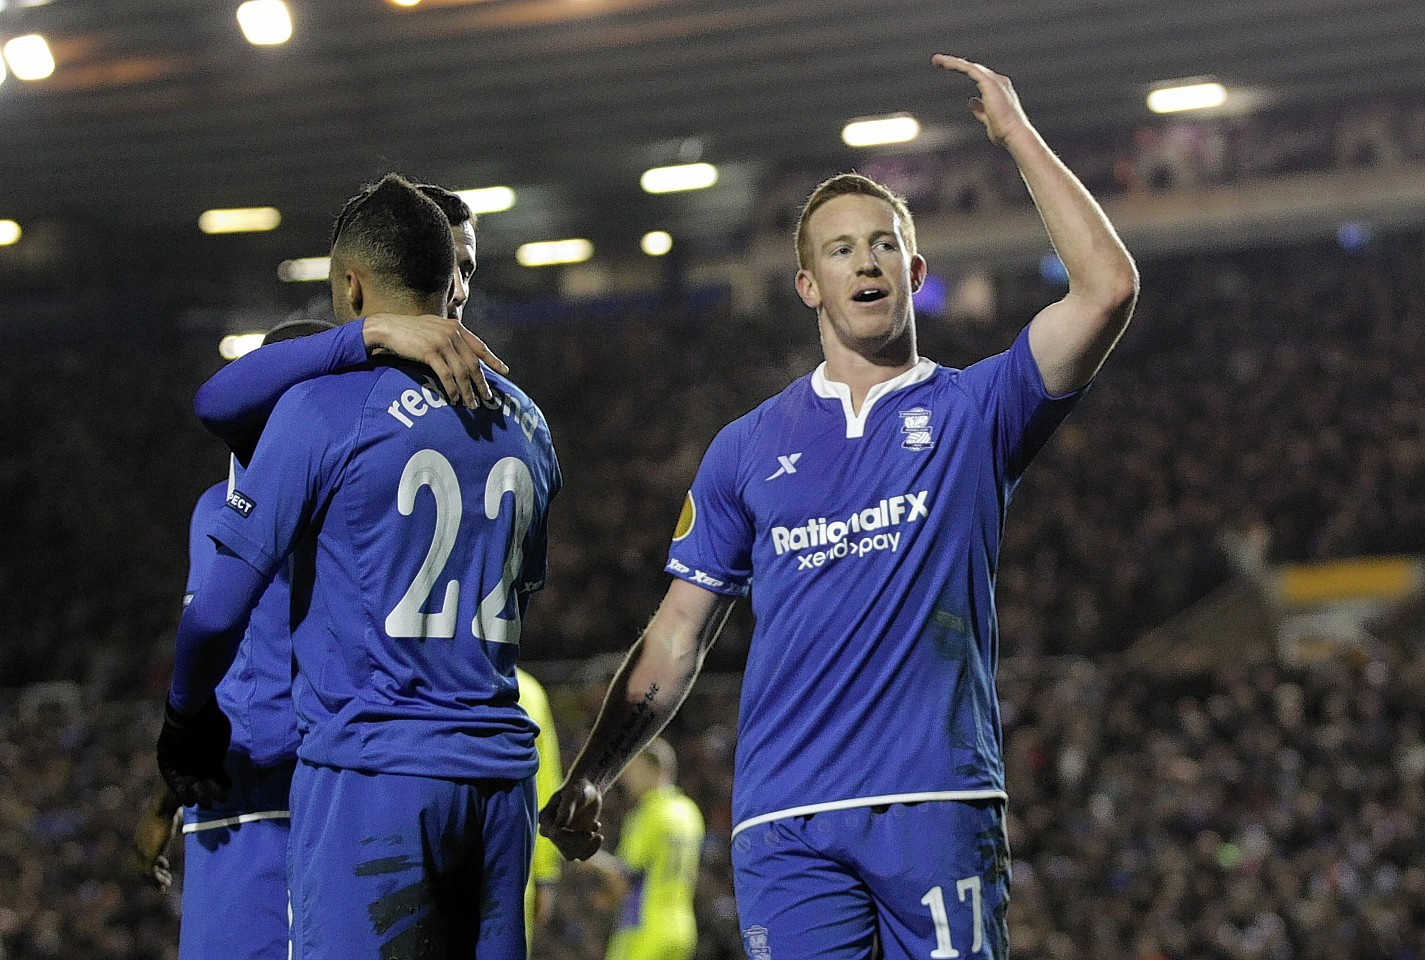 Adam Rooney struggled to find his goalscoring form during his short spell at Birmingham